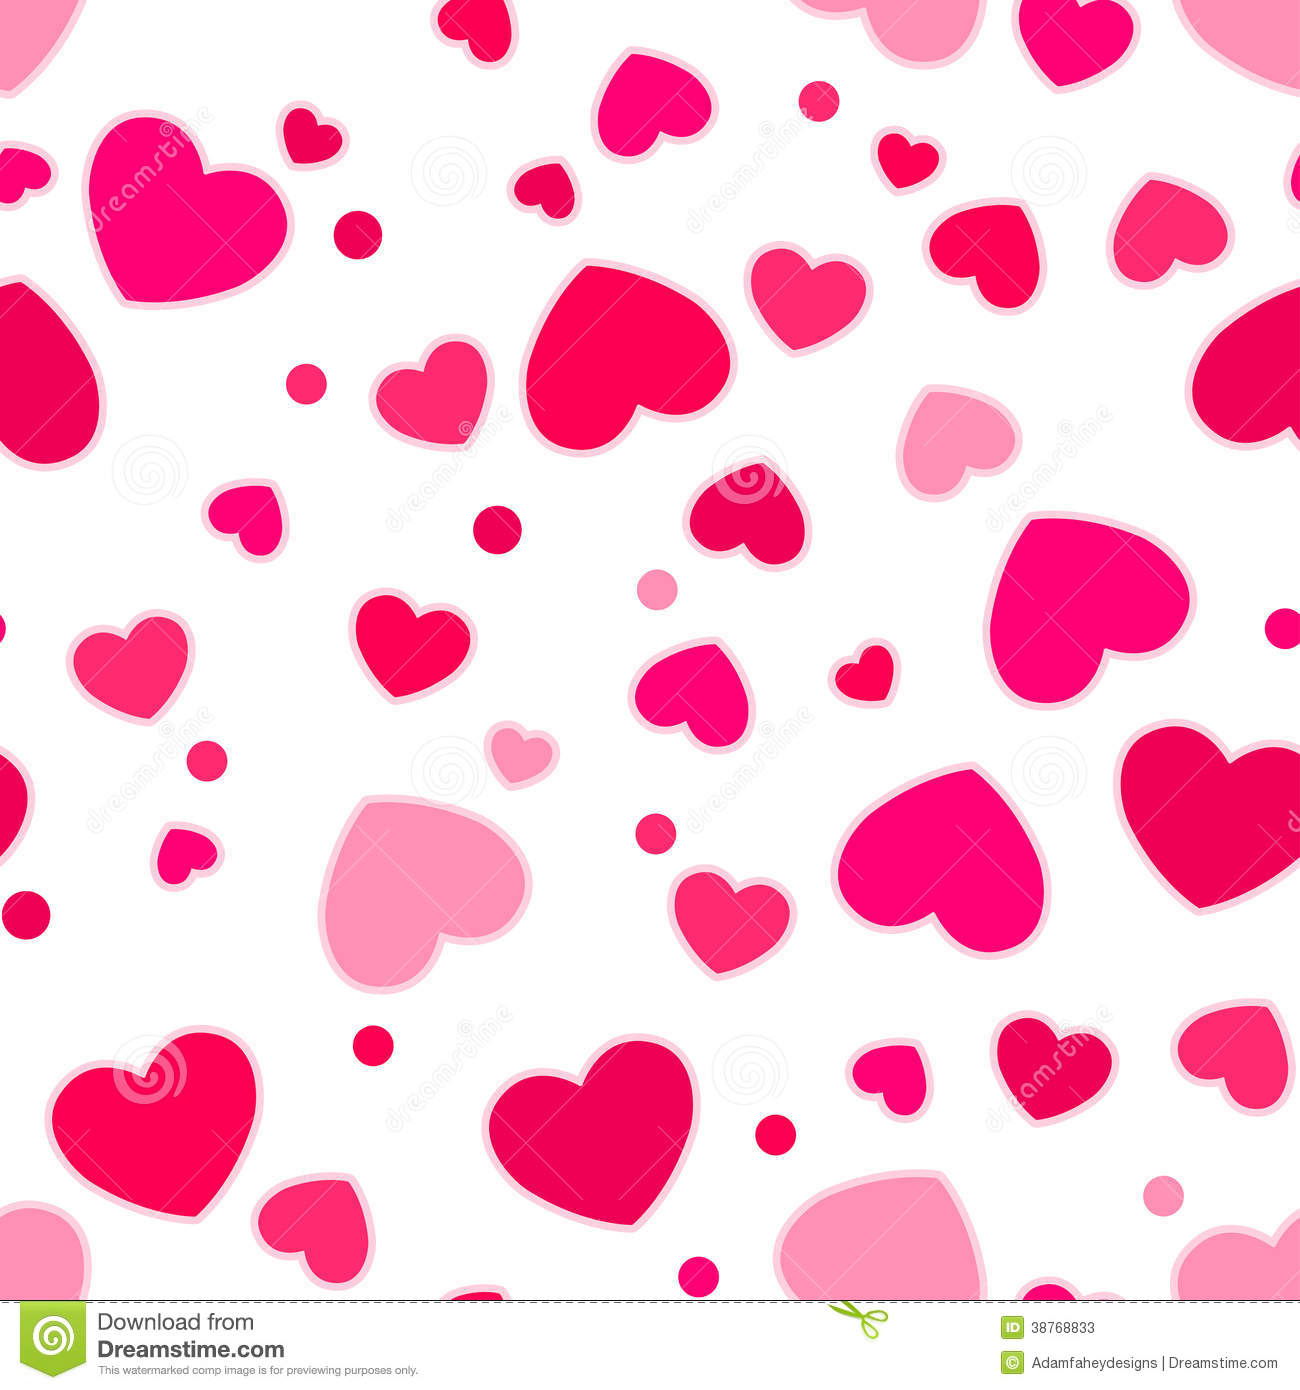 Stock Photos Cute Pink Red Hearts Seamless Pattern Image38768833